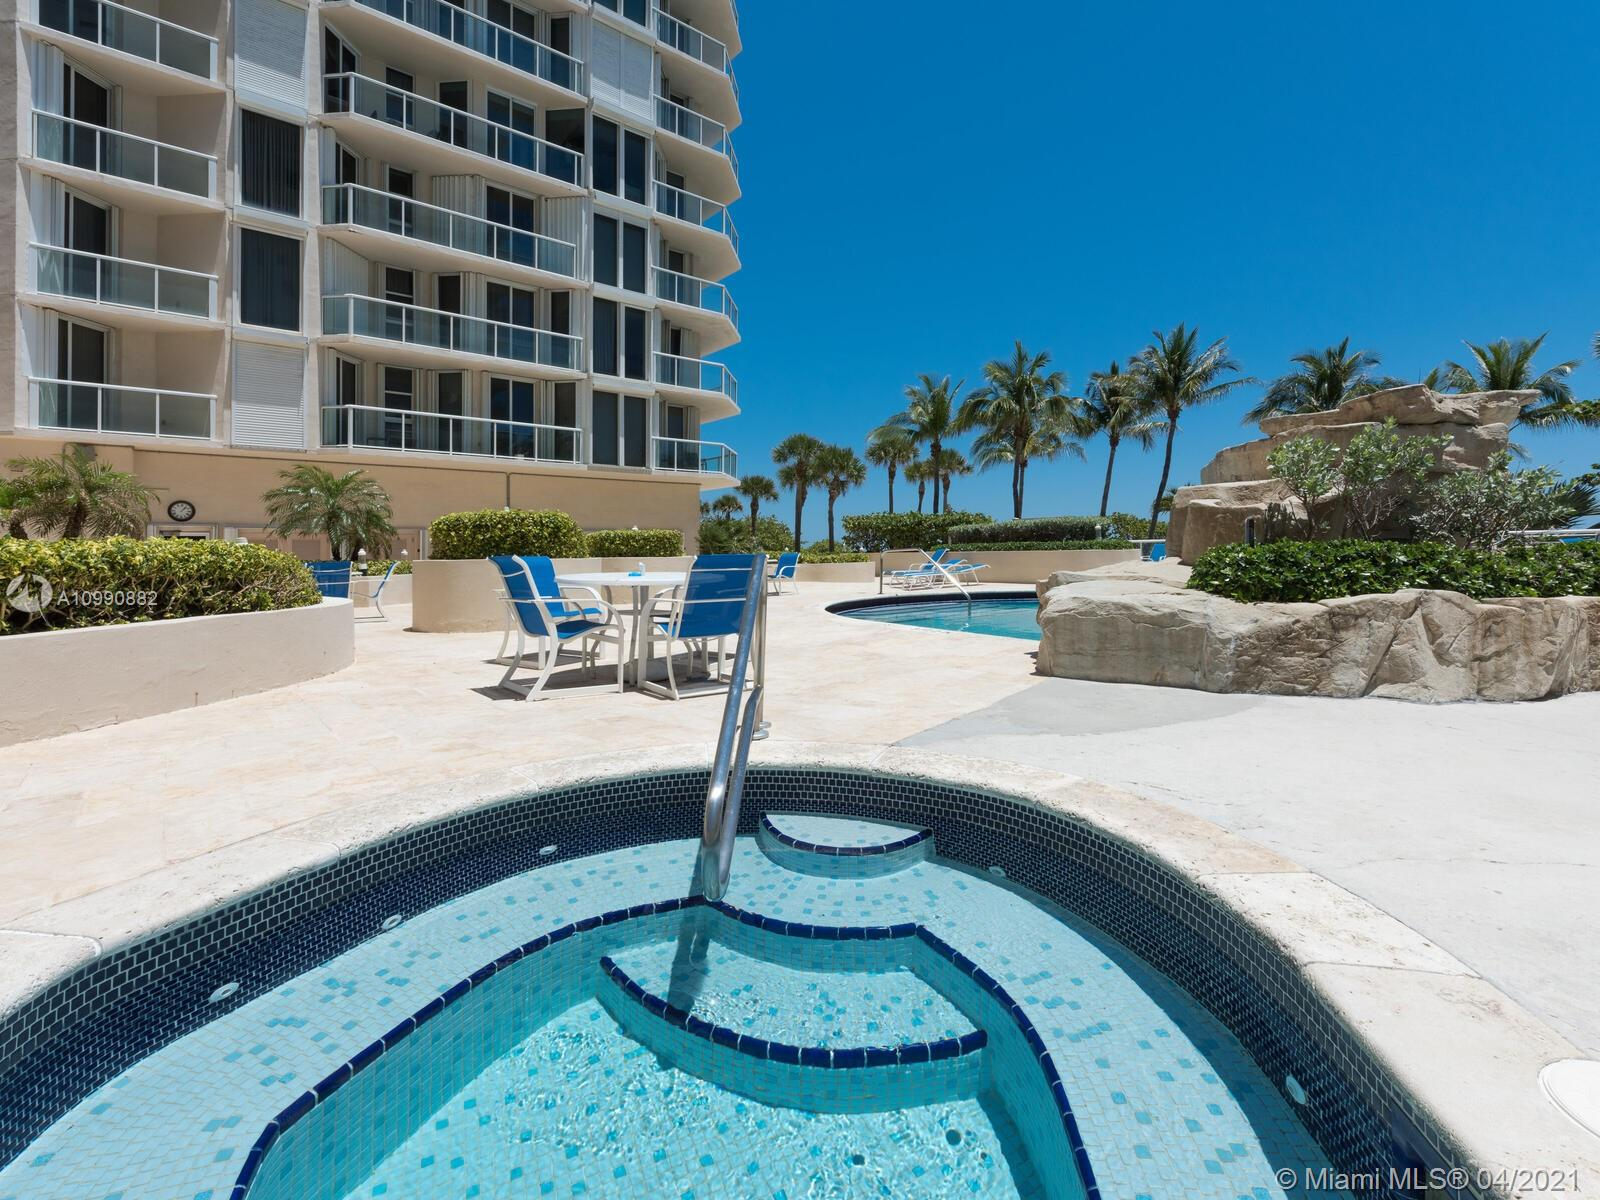 Photo of 8925 Collins Ave #2H, Surfside, Florida, 33154 - Pool before renovation.